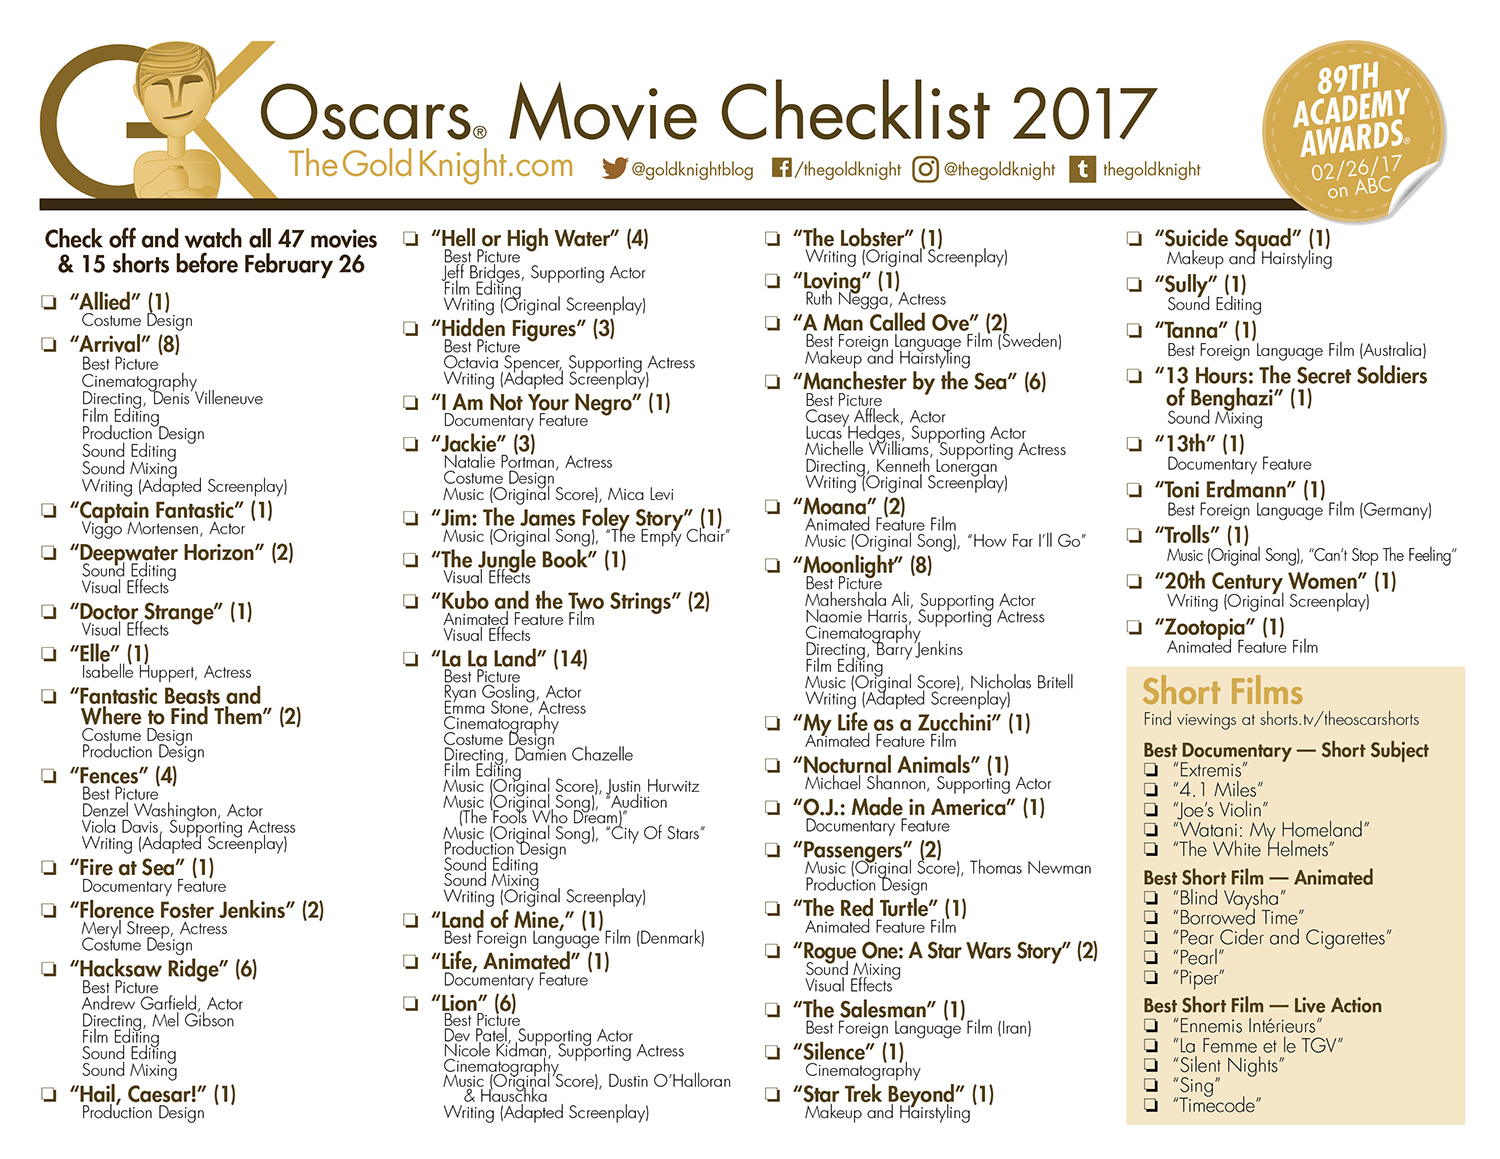 The Gold Knight Blog's handy and printable movie checklist for 89th Academy Awards. Follow @goldknightblog on Twitter for the latest.